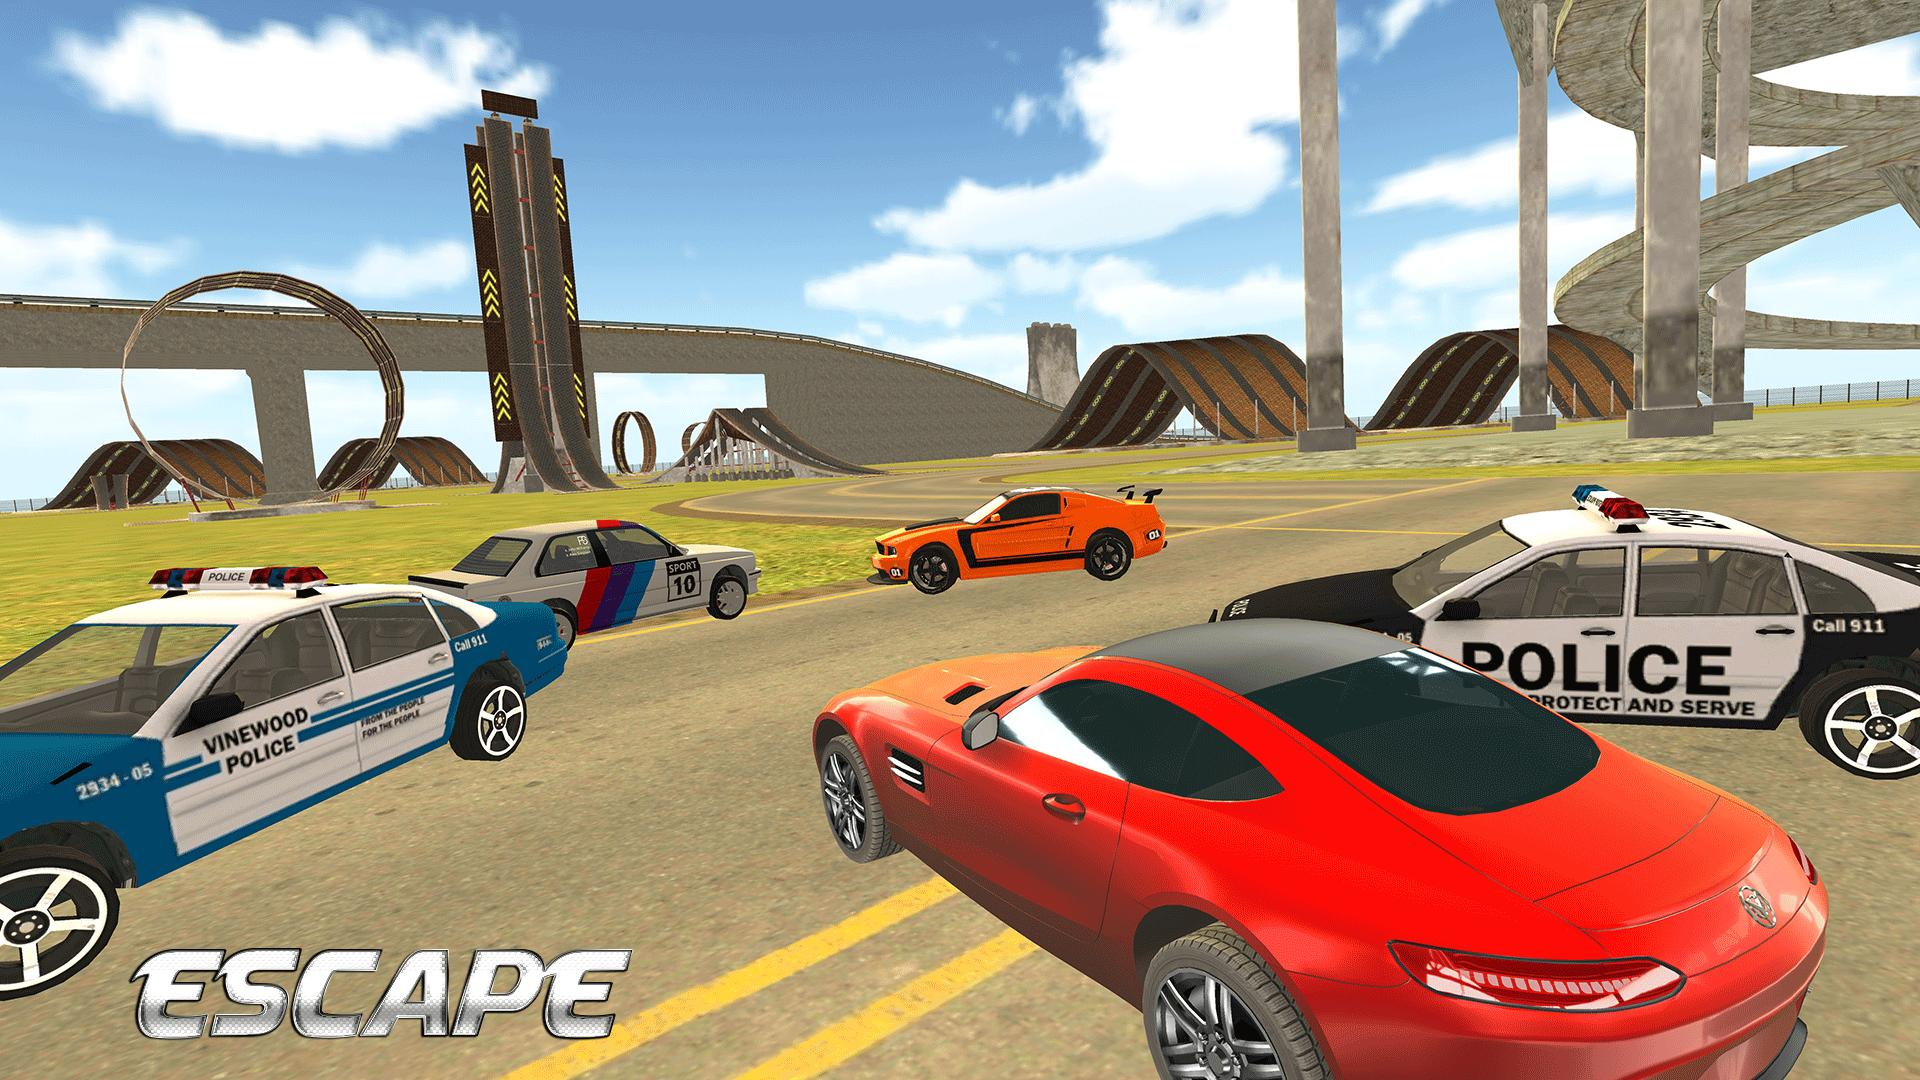 E30 - M3 Drive & Chase Police Car 3D for Android - APK Download